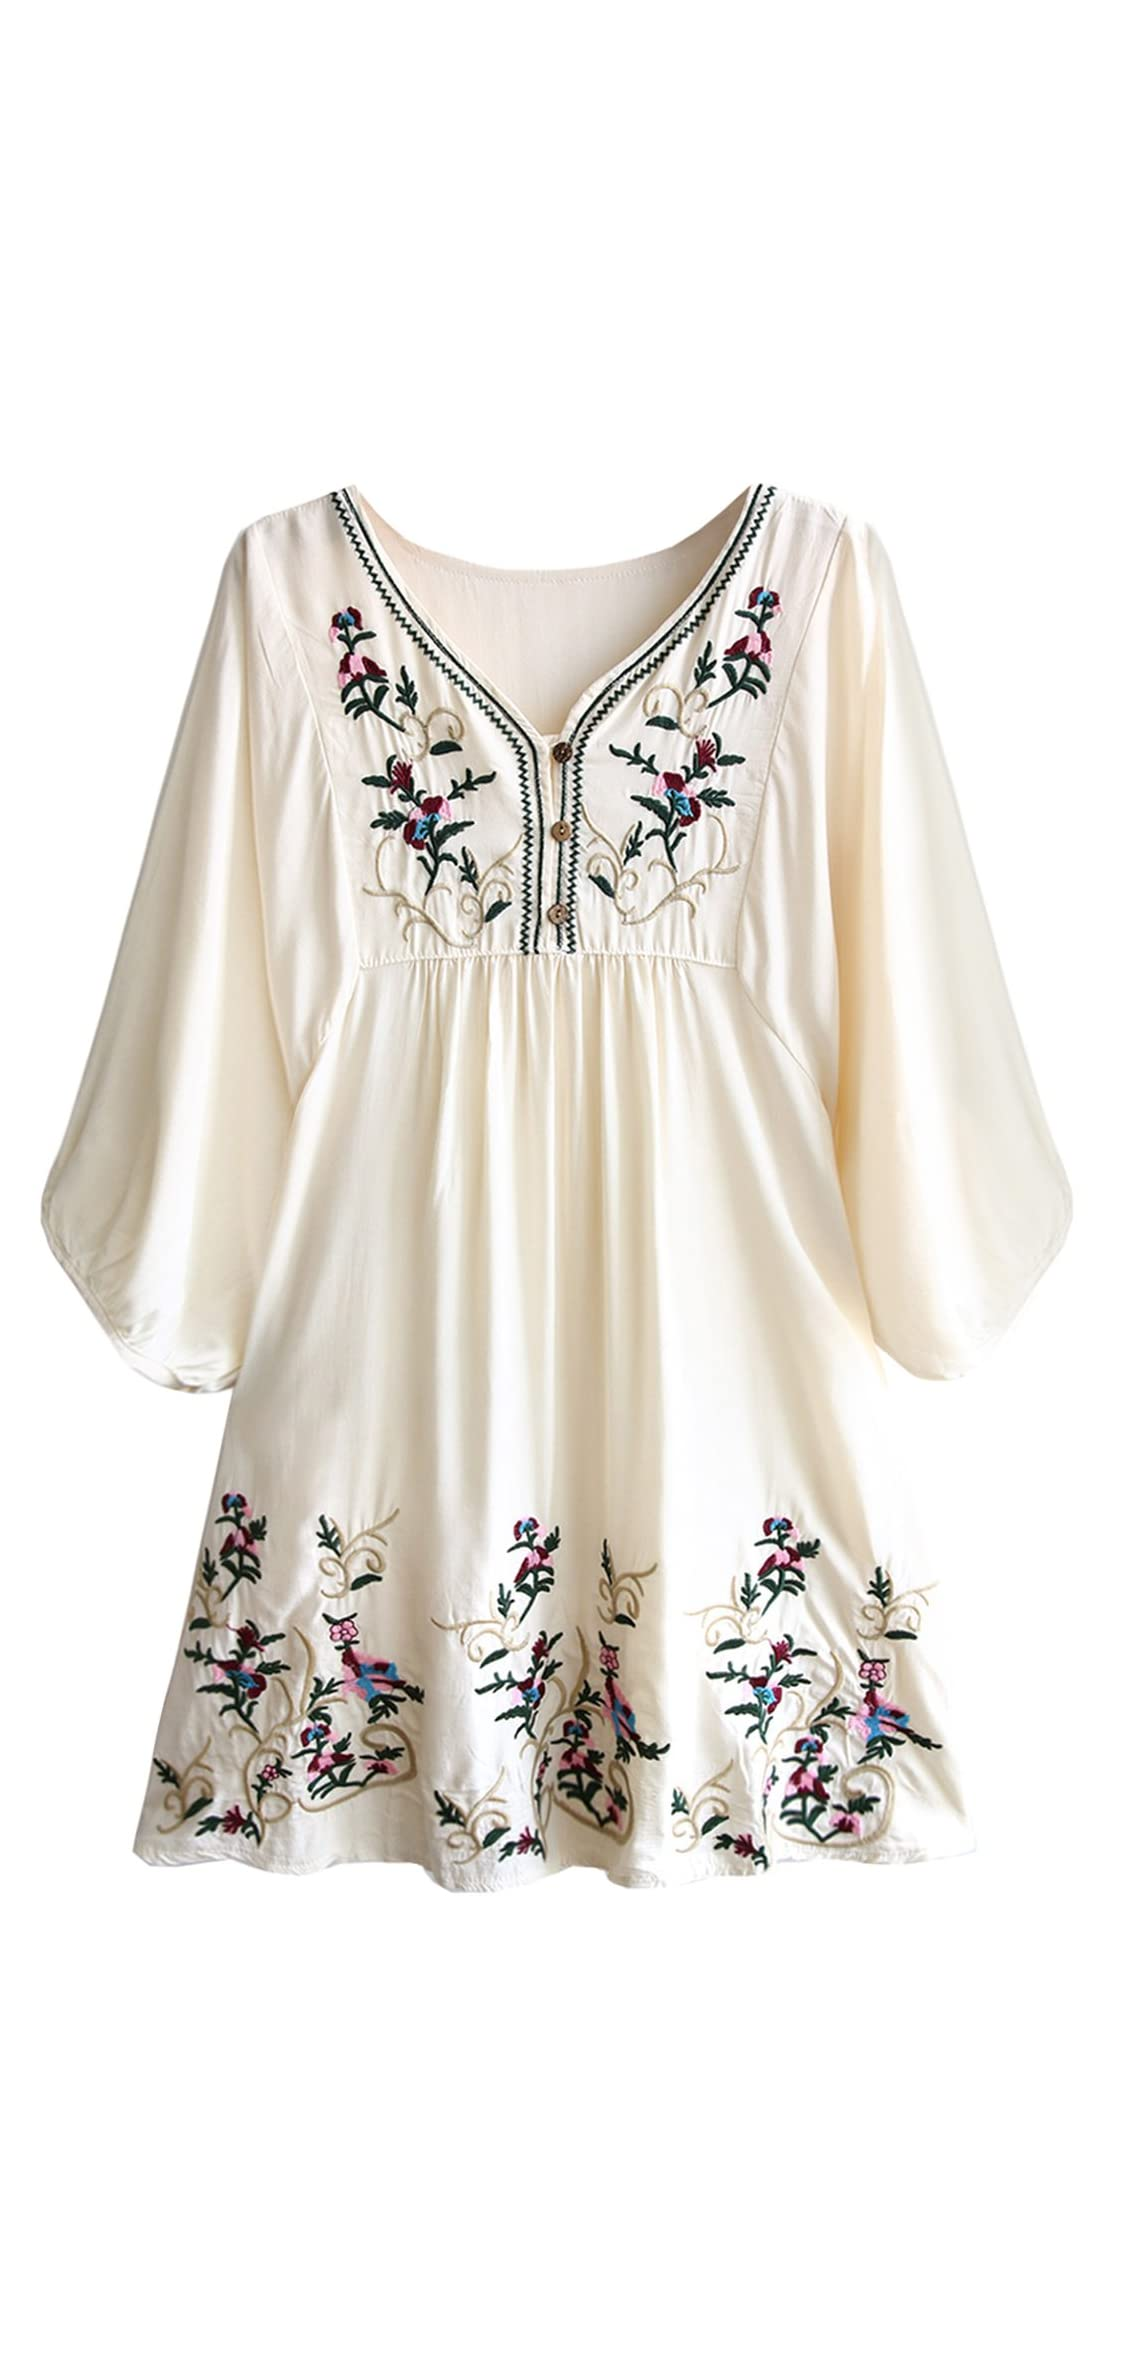 Women's Bohemian Embroidery Floral Tunic Shift Blouse